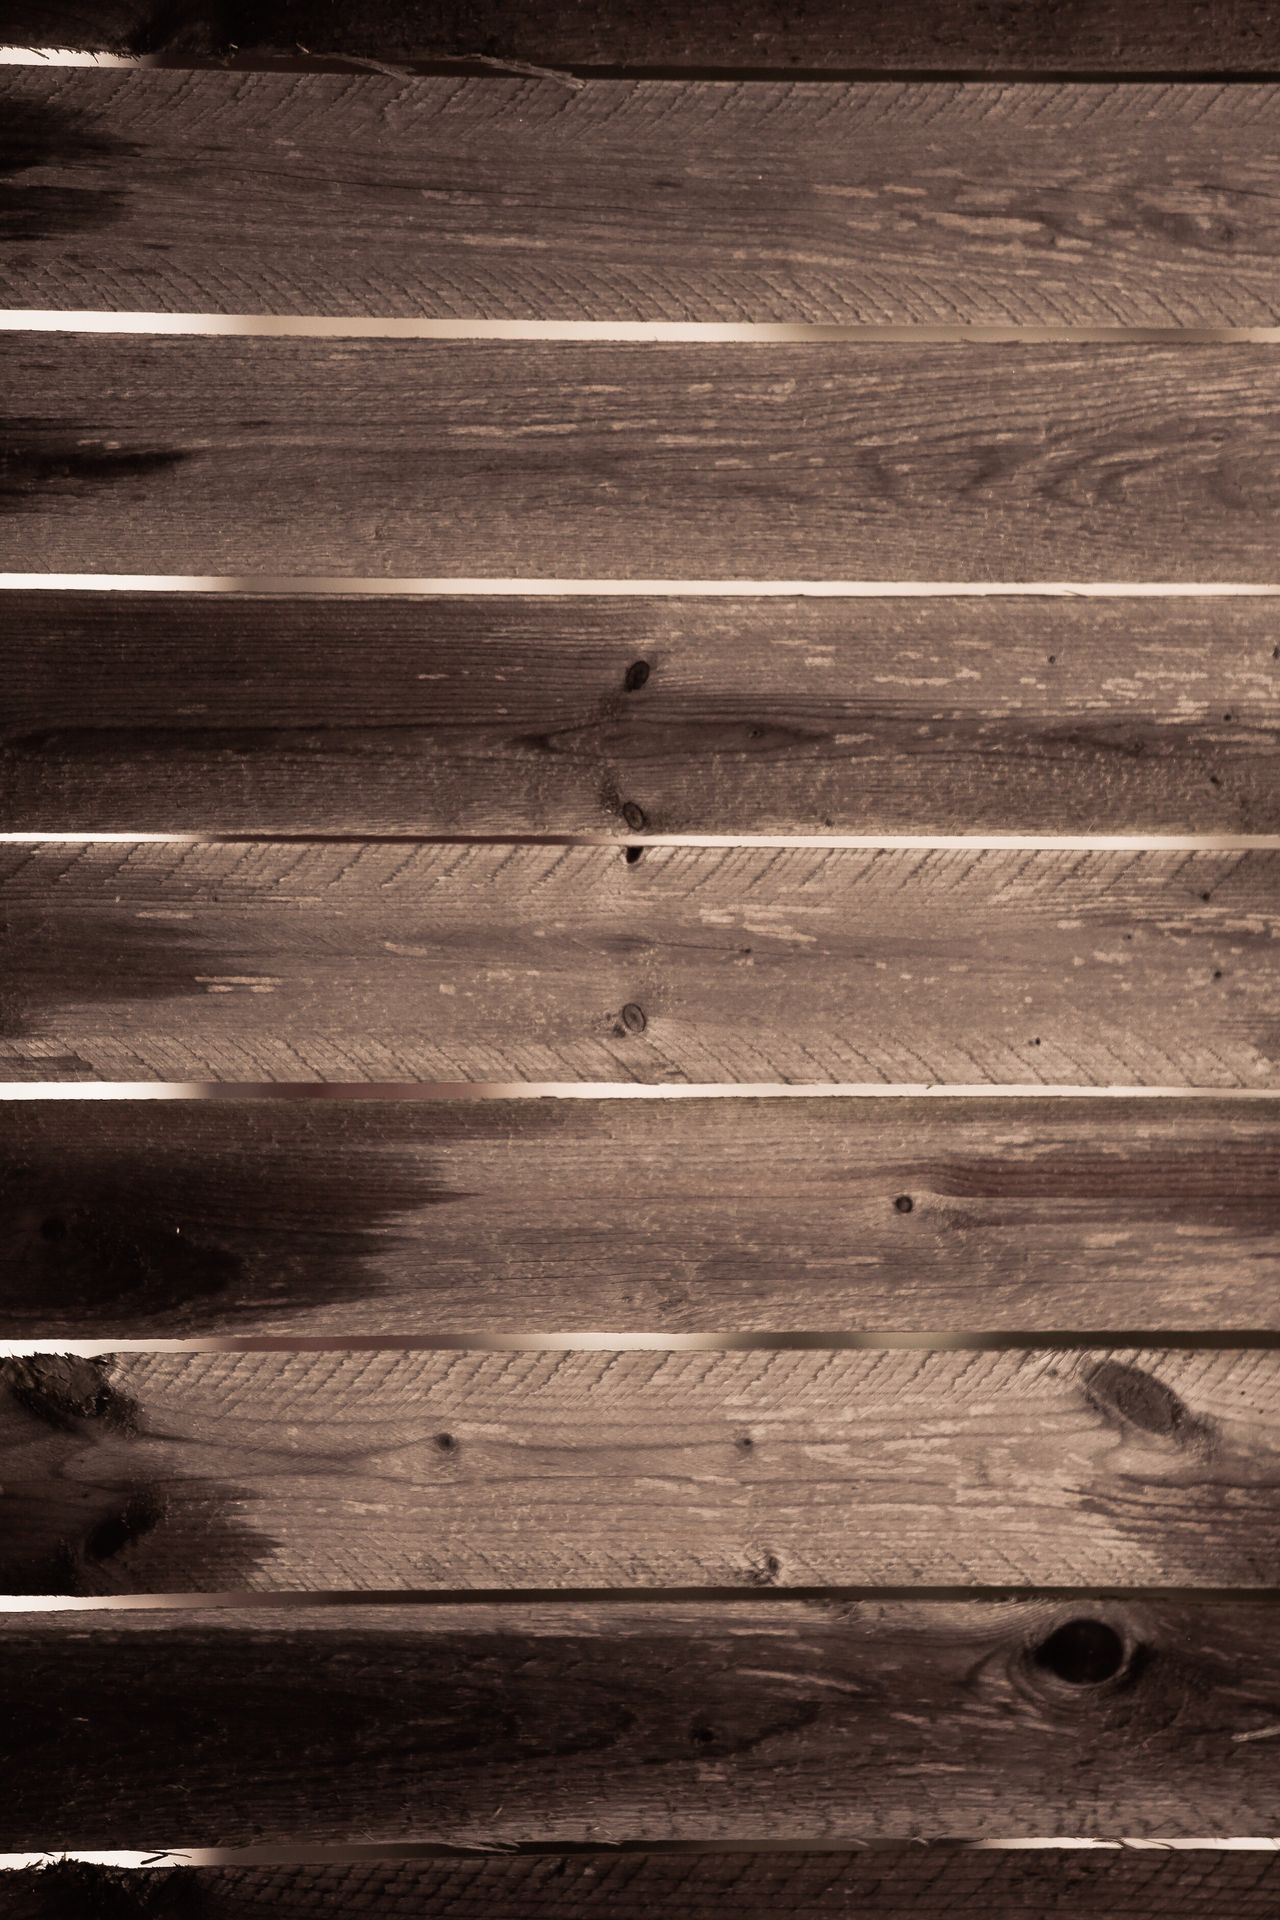 Wood Grain Backgrounds Textured  Wood - Material Plank Pattern Material Hardwood Nature Timber Brown Background Colored Background Blank Dark Abstract Wood Paneling Close-up No People Pine Wood Boat Deck JGLowe Outdoors Textured  Nature Modern